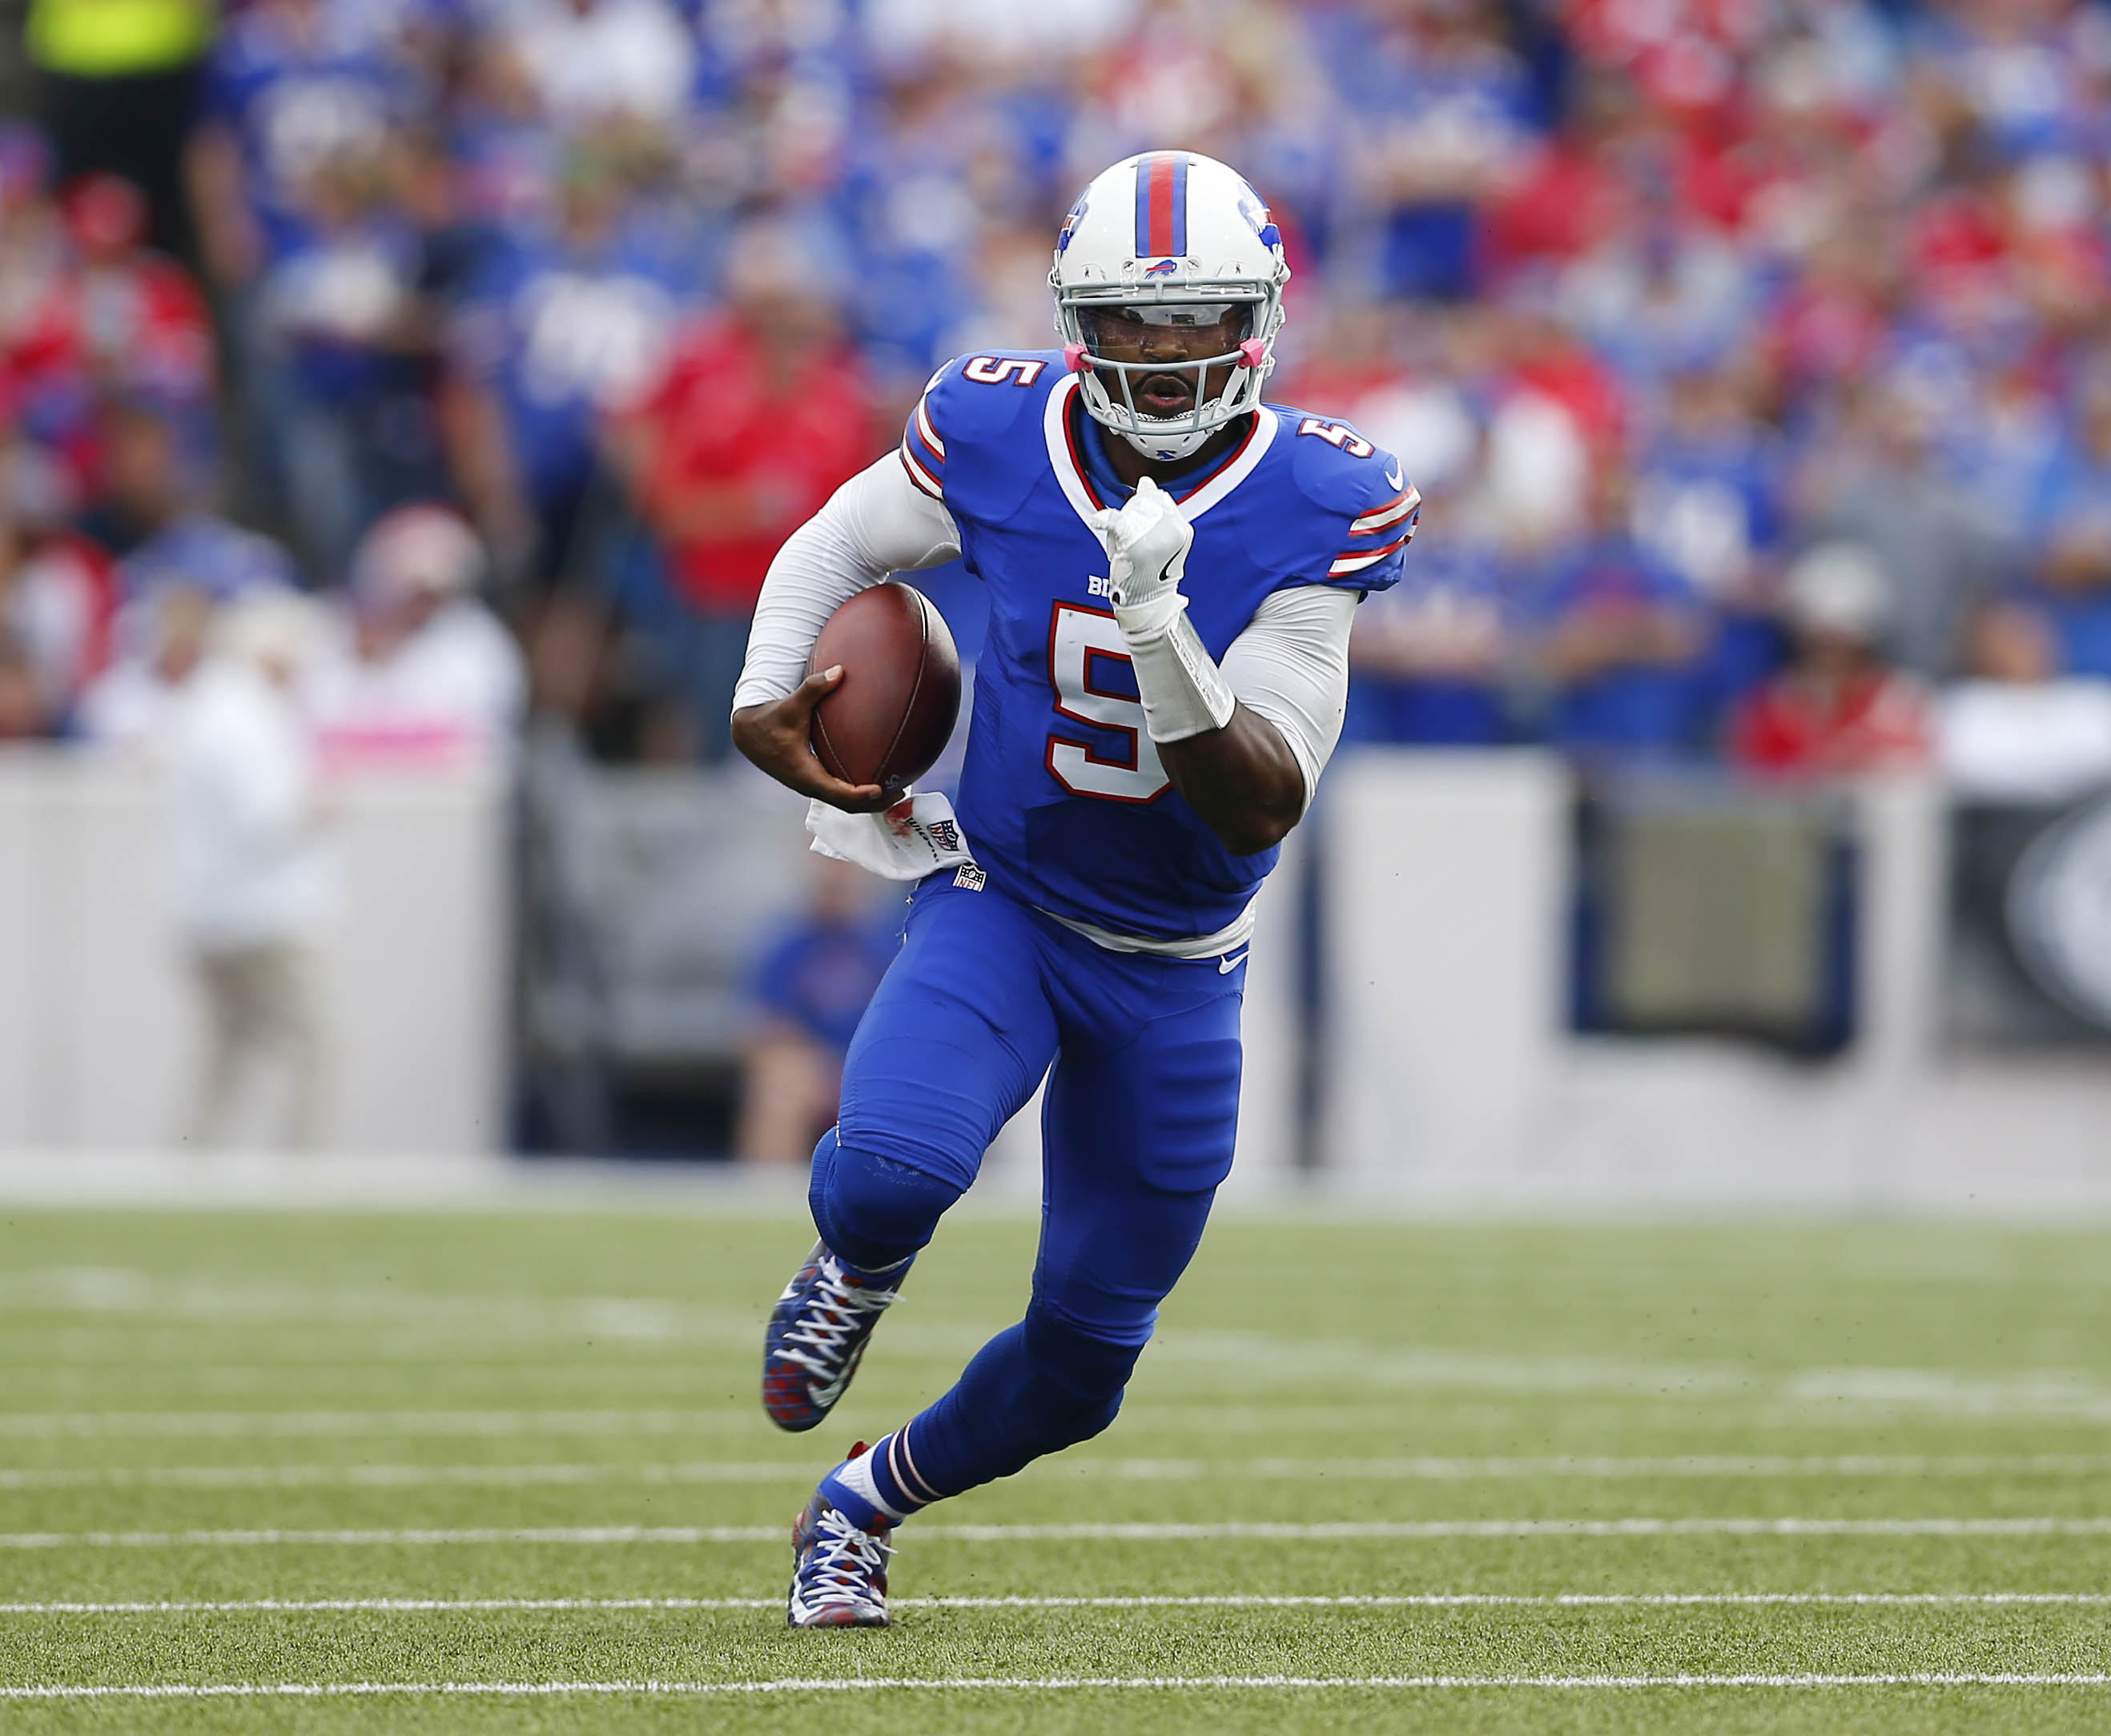 Tyrod Taylor finds open field in the Bills' blowout win over the 49ers in October. (Mark Mulville/The Buffalo News)